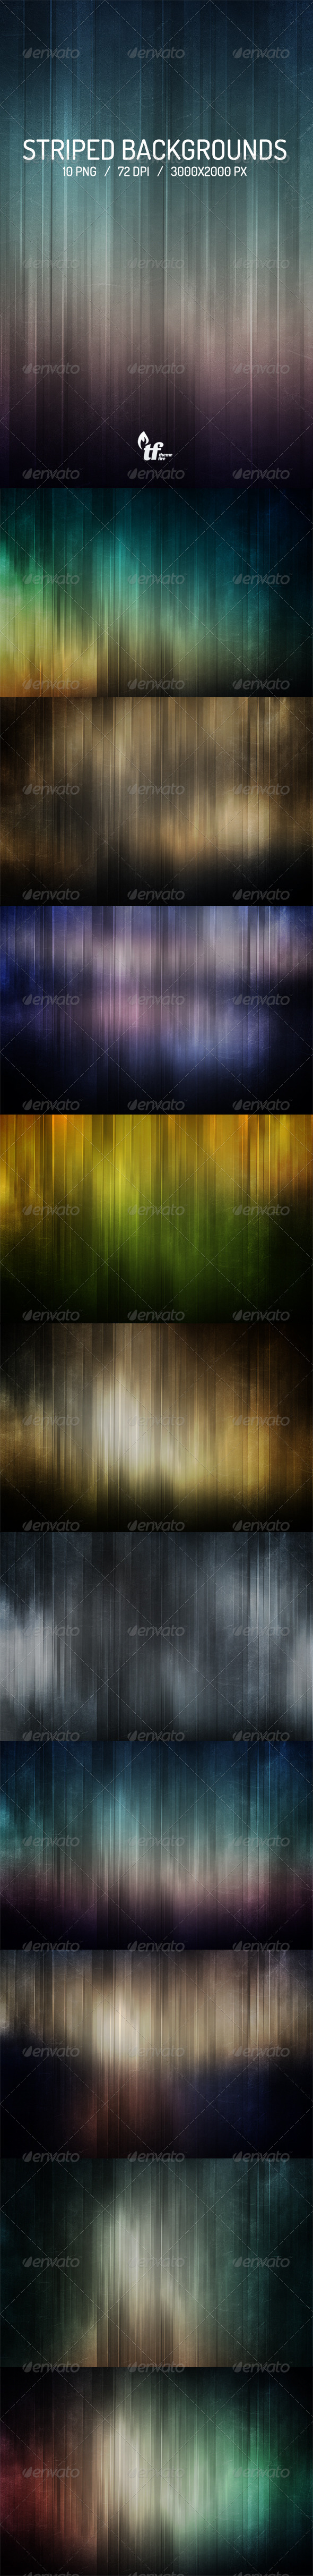 10 Striped Backgrounds